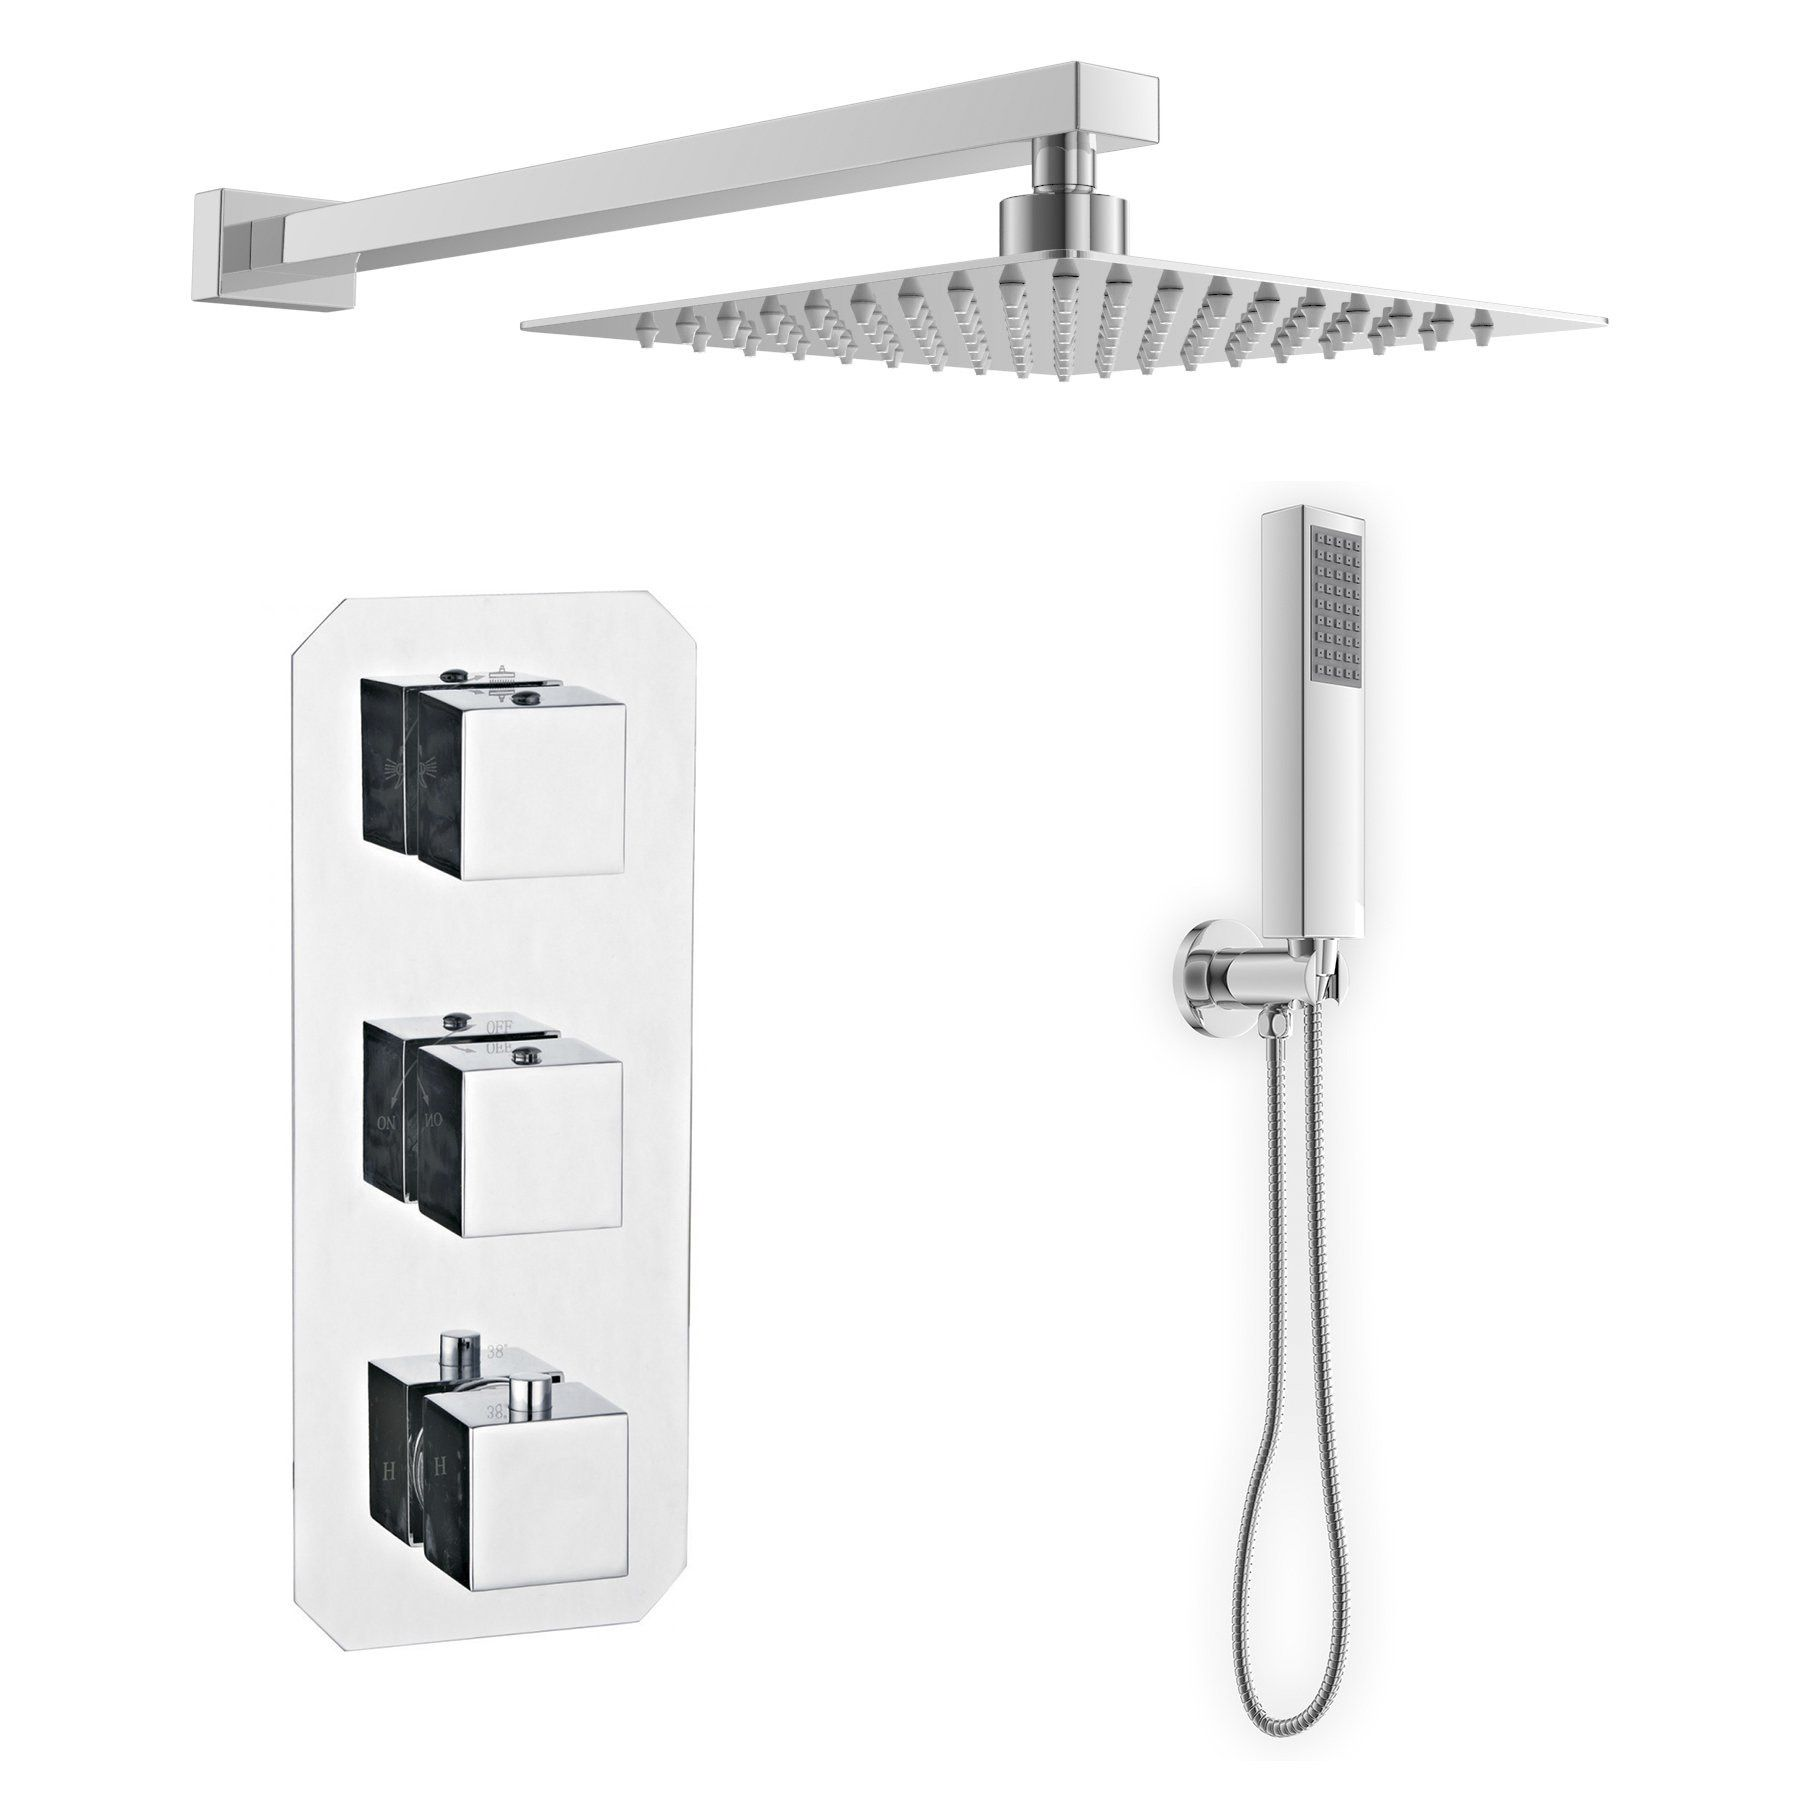 200mm Slimline Wall Square Shower Head Set With 3 Button